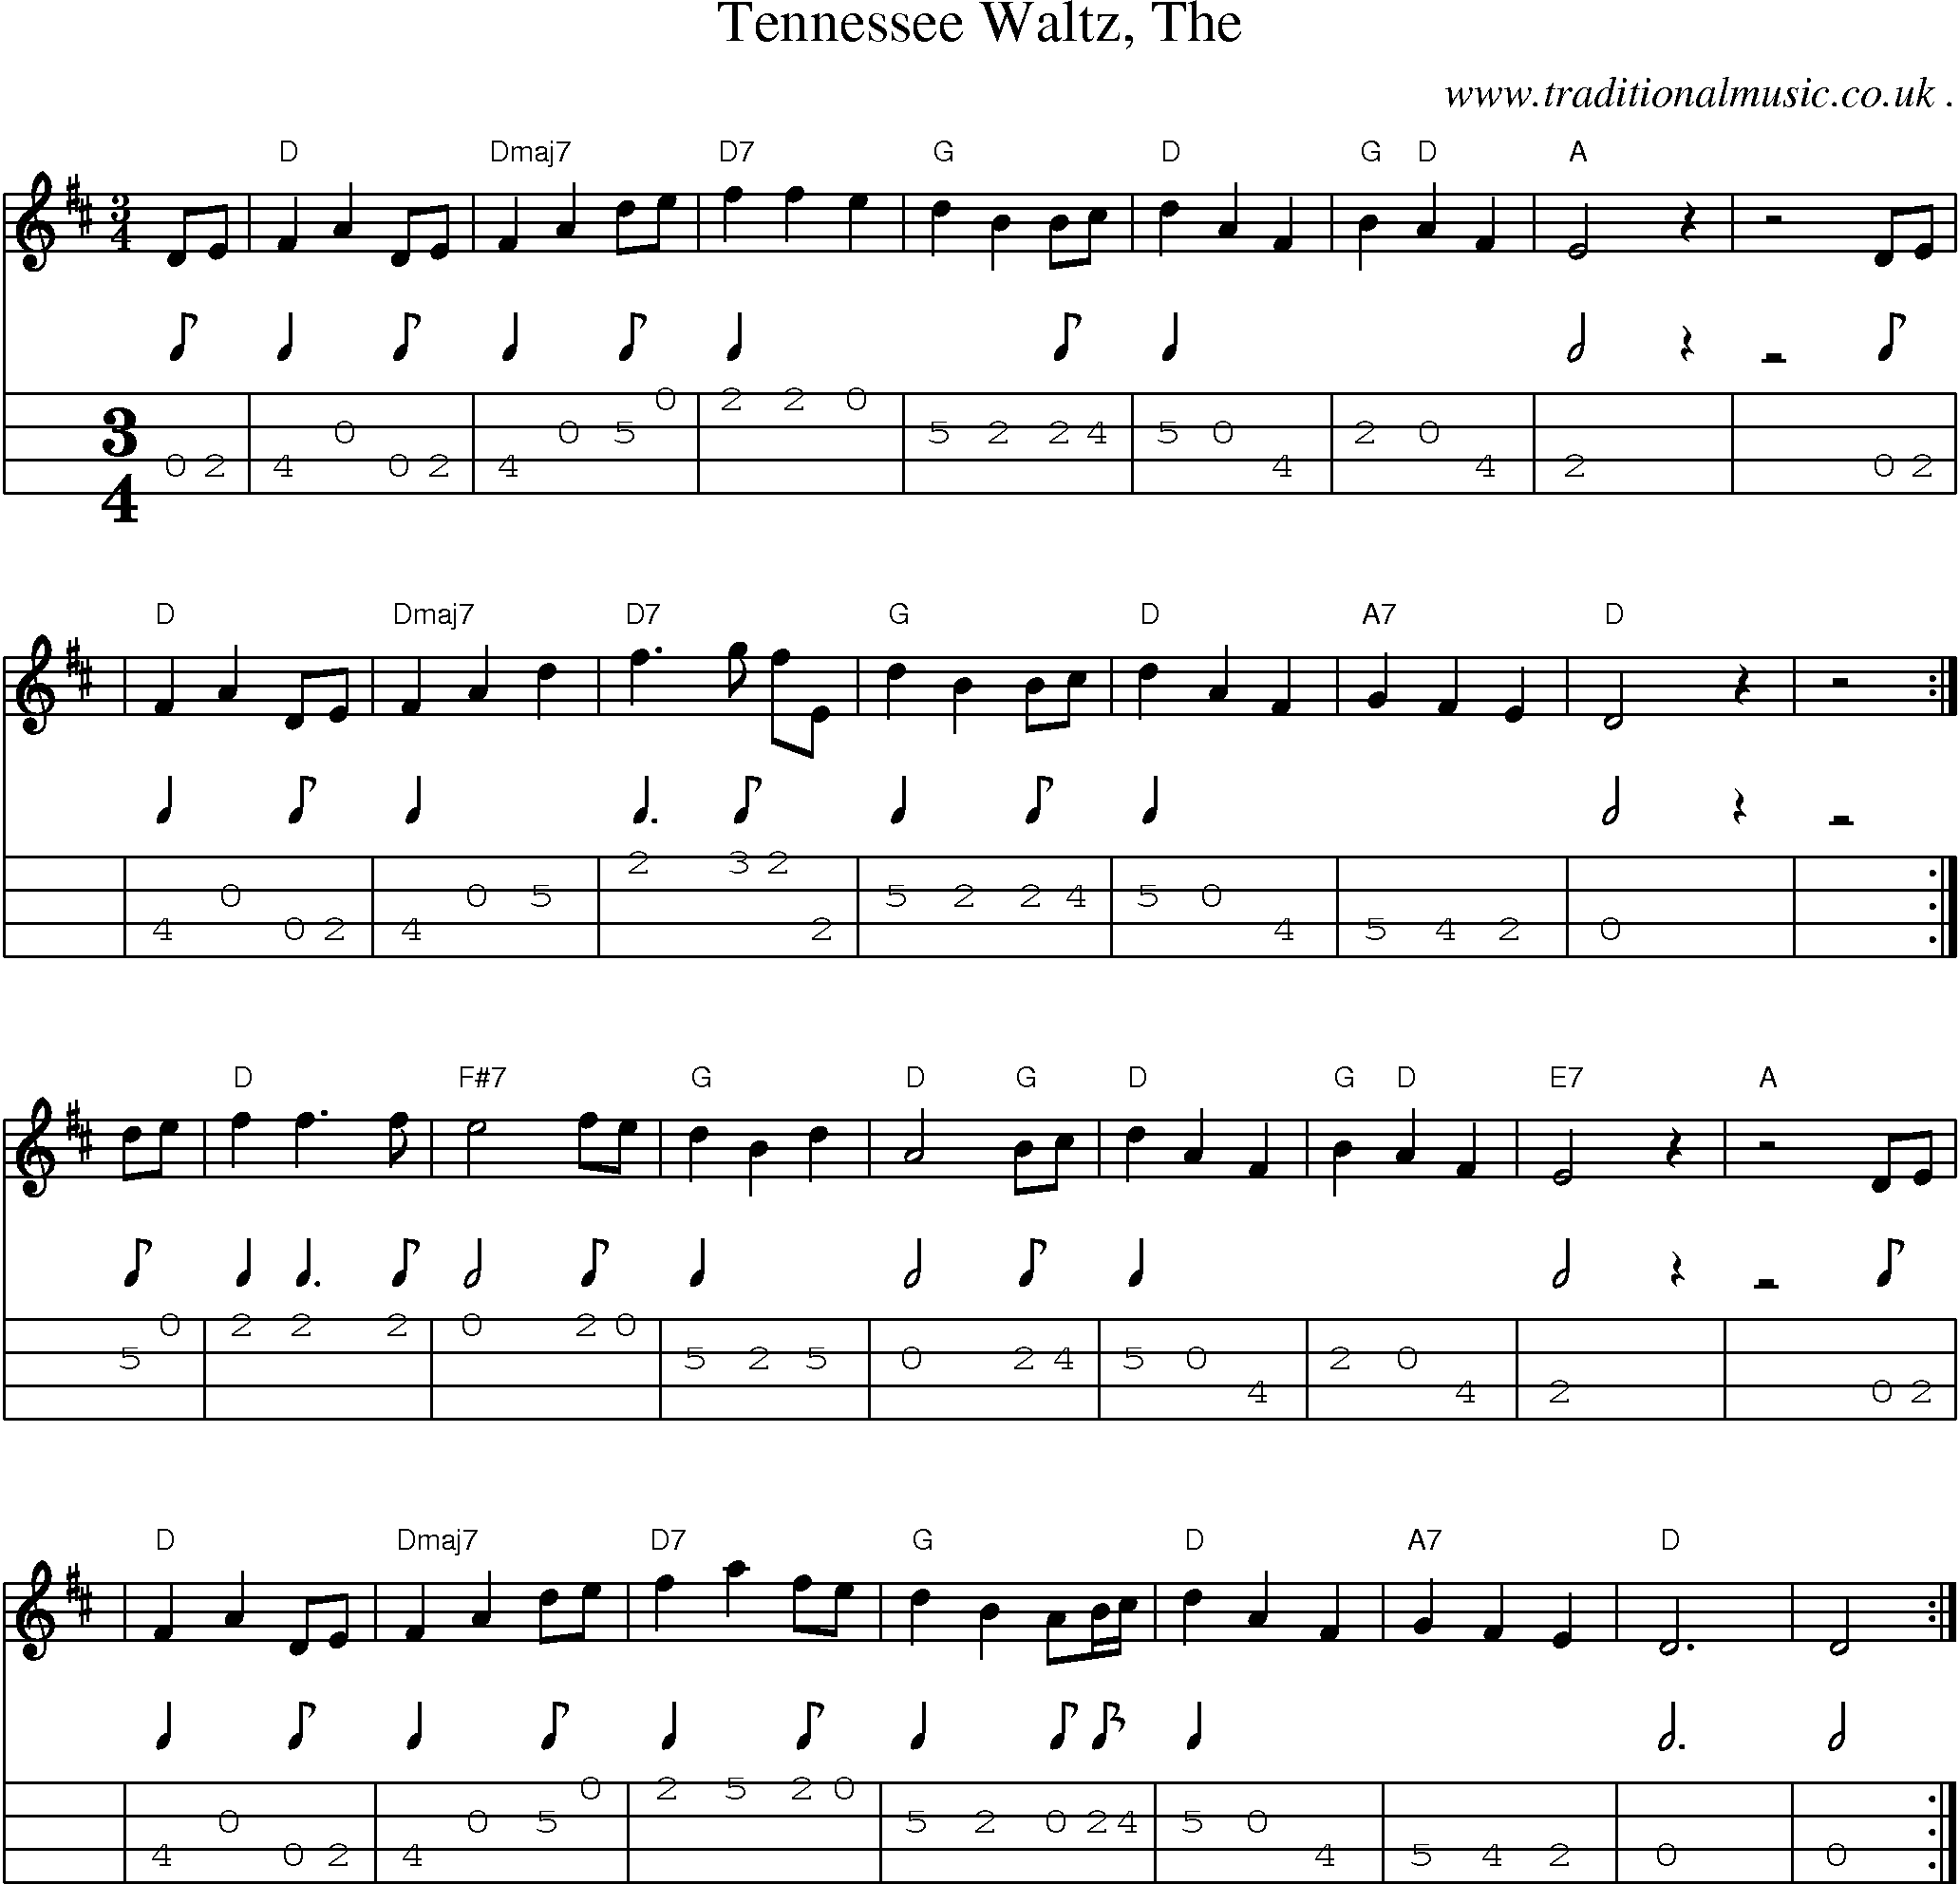 Old-time music, scores and tabs for mandolin - Tennessee Waltz | The